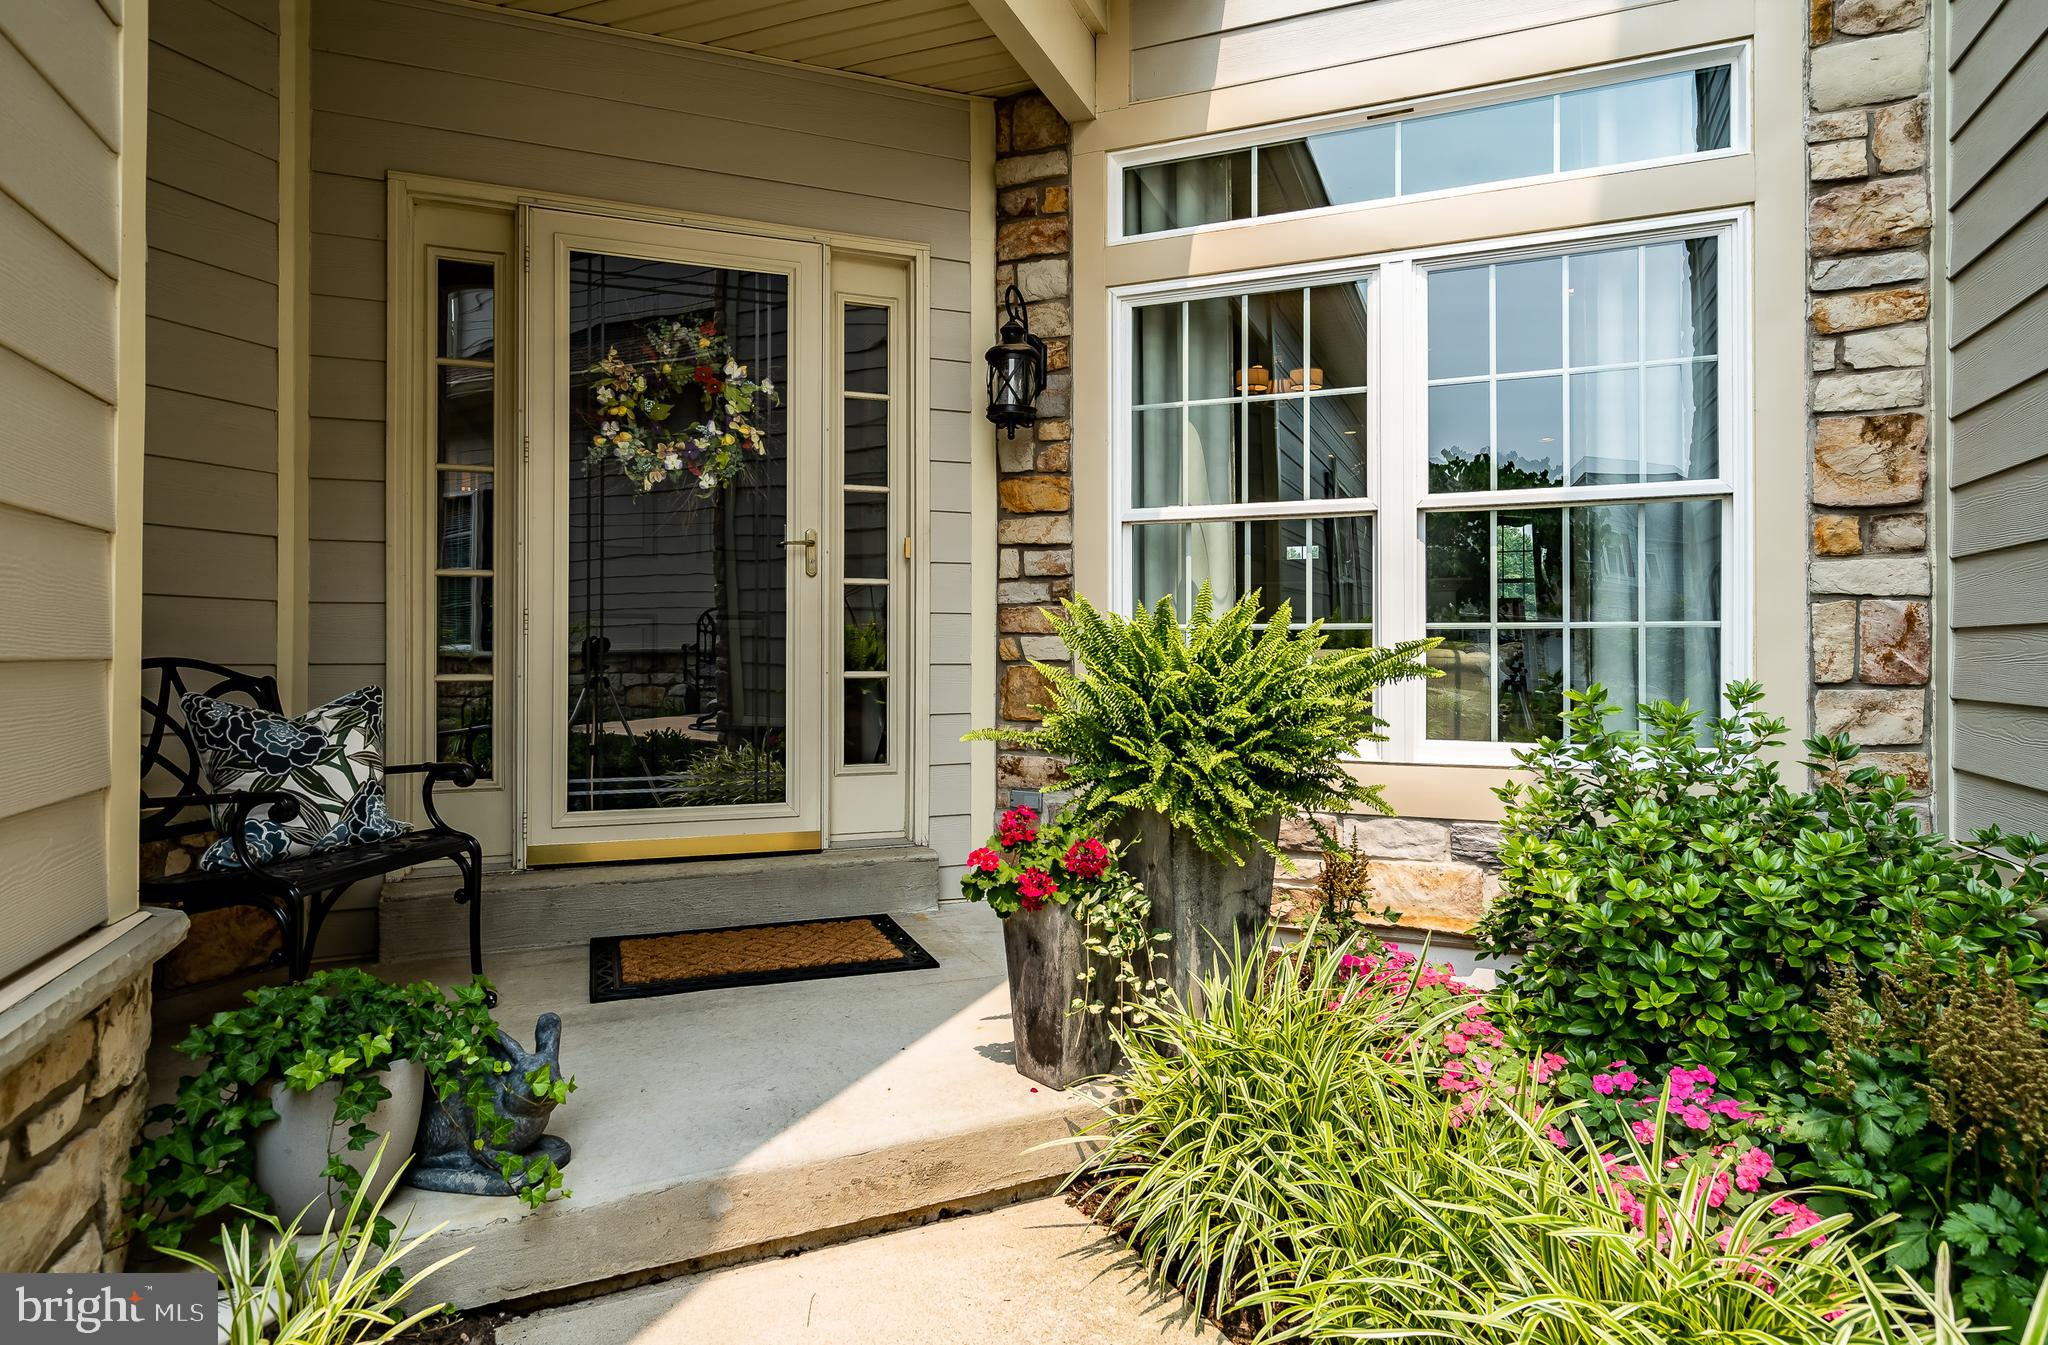 """Look no further for the perfect move in ready townhome in the much sought after """"hidden gem"""" known as the Greens at Penn Oaks.  Location, location, location and this home has it!  The views and magical sunsets from one of the largest decks in the community which overlooks the 10th green, is perfect for entertaining and large  family gatherings.  The welcoming foyer opens up to the formal step down living room and dining room both with hardwood floors, crown molding and wainscoting. The kitchen boasts modern subway stone backsplash, stainless steel appliances, including new stainless hood, built in microwave, GE Profile gas range, granite countertops with a new contrasting  Quartz countertop on the island and flows nicely into the cozy family room with double sided gas fireplace, wainscoting, crown molding,  and French doors to the new Trex deck with privacy walls and a retractable awning. The hardwood floors that grace  the first floor continue to the second floor.  The second floor primary suite has  a gas fireplace in the sitting area, large walk in closet with custom closet system and a large, light filled bathroom with his and her sinks and custom plantation shutters. There are two additional good sized bedrooms with large closets, one being a walk in, with newer neutral carpet.  Also on this floor is a convenient laundry room with built in ironing board!  The lower level adds approximately 600 additional square feet of living space, a full bath with stand up shower, built ins and desk area, custom lighting, two large unfinished storage areas and the owner had this space fully soundproofed.  All lighting fixtures in this home have been updated and many were purchased from Lighting by Design.  There is a two car garage, two driveway spaces and plenty of guest parking available.  New hardy plank siding, a new roof, new A/C, mostly new windows, and a new hardscape patio off the deck have all been done in the last few years.   The low monthly association fee include"""